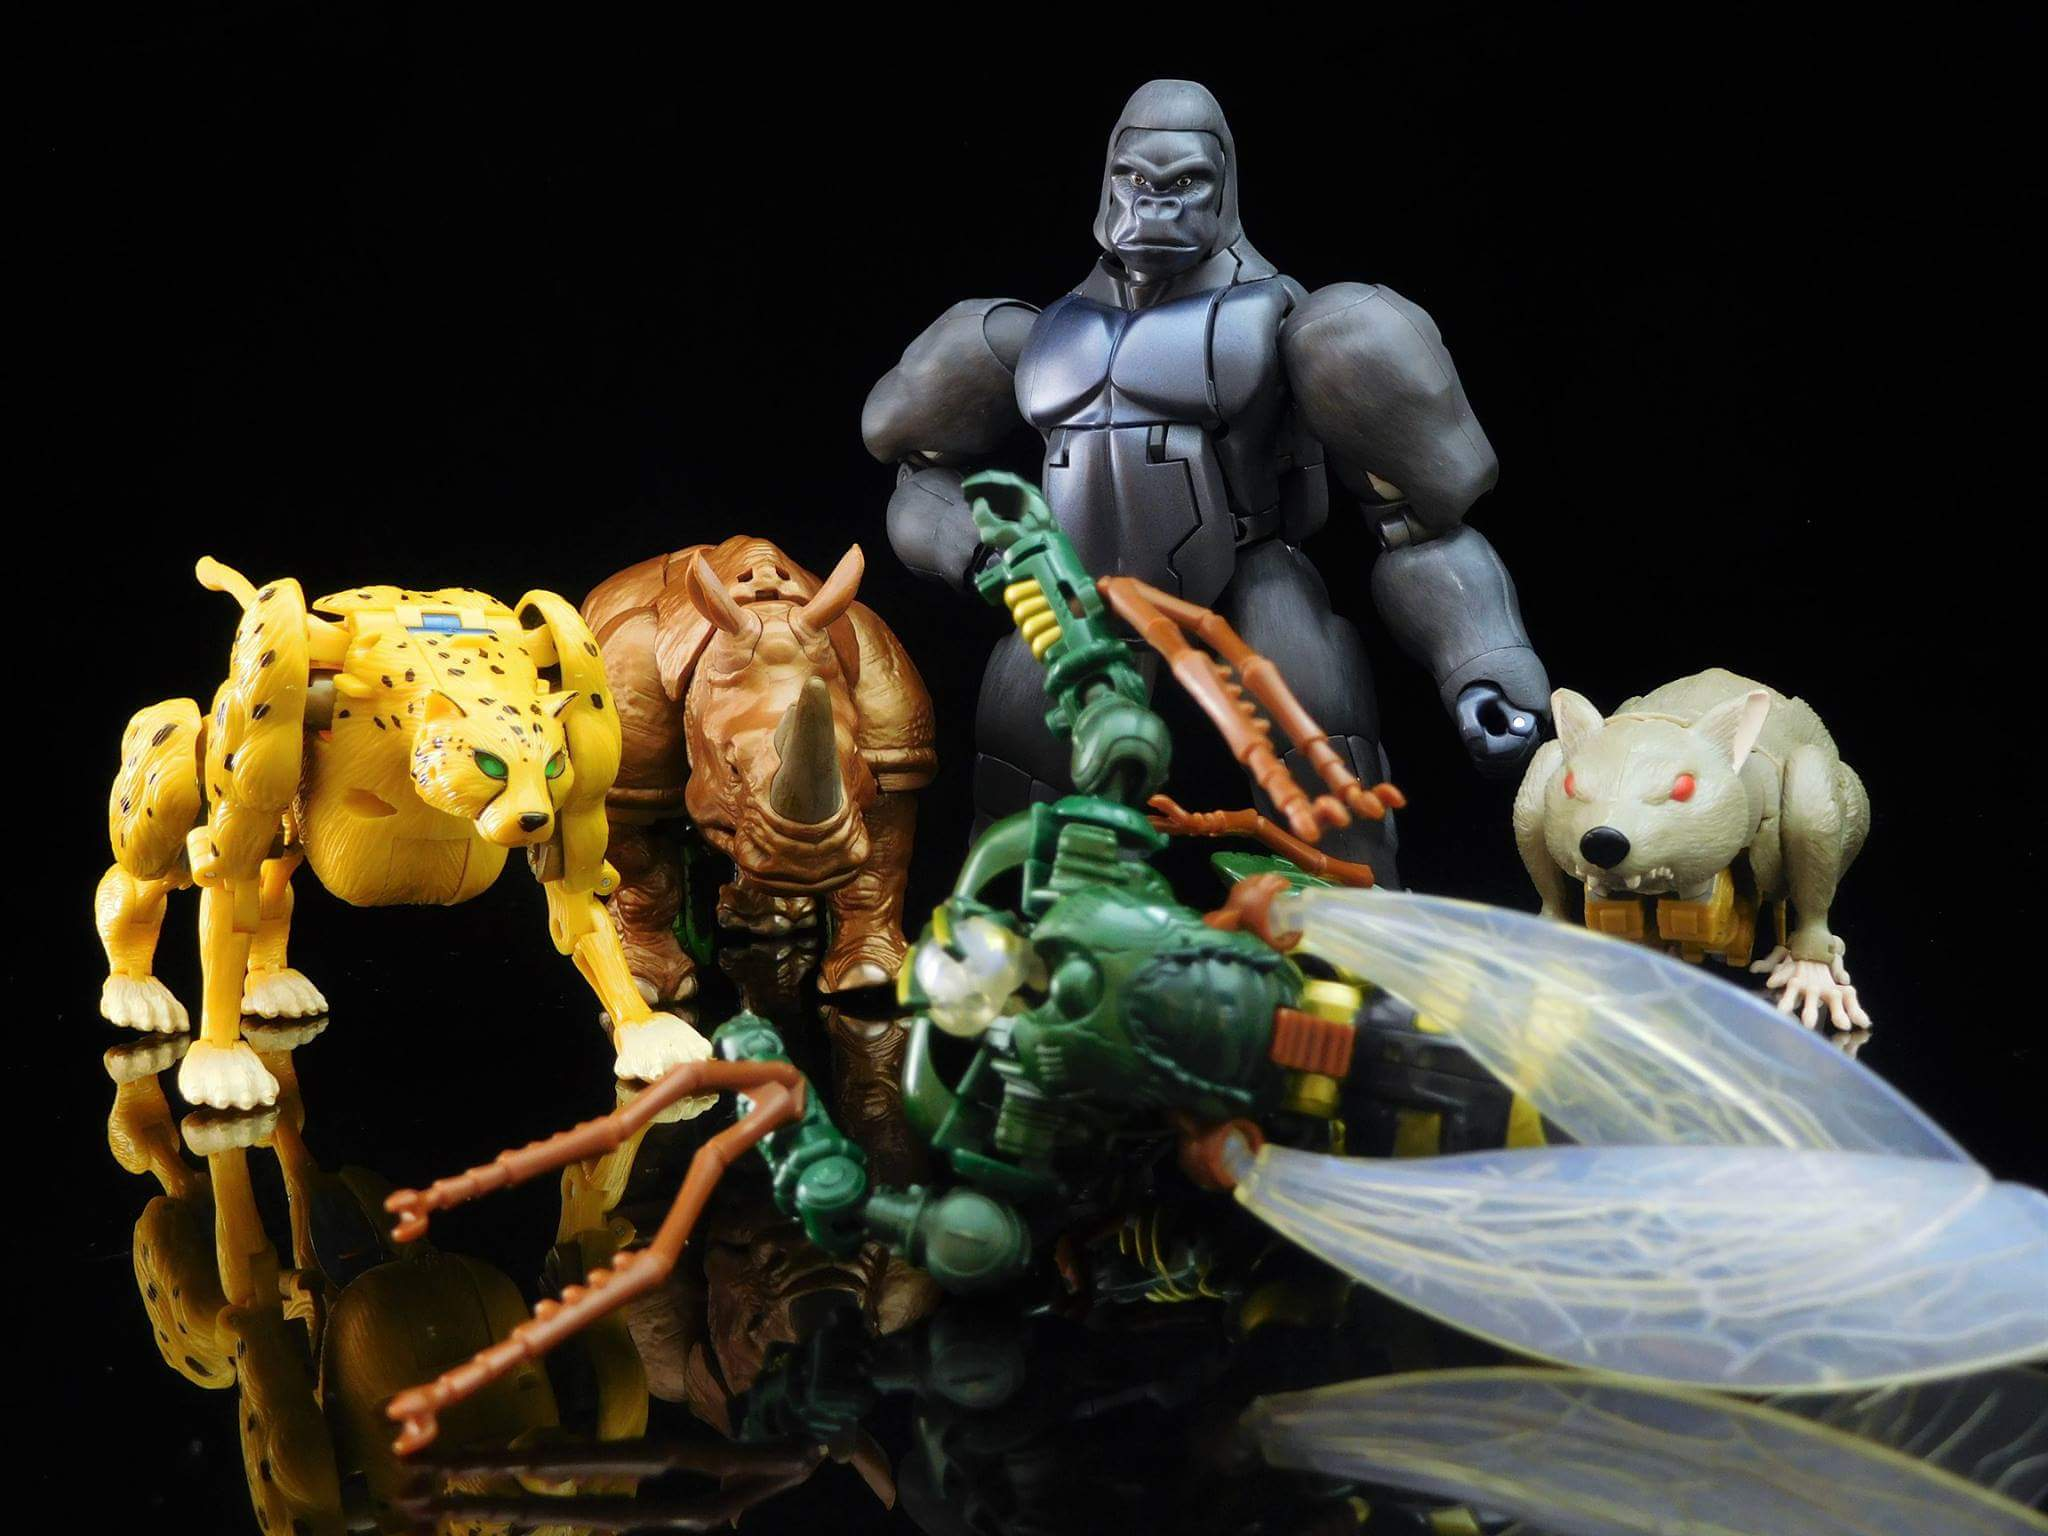 [Masterpiece] MP-32, MP-38 Optimus Primal et MP-38+ Burning Convoy (Beast Wars) - Page 3 7l6EBTgH